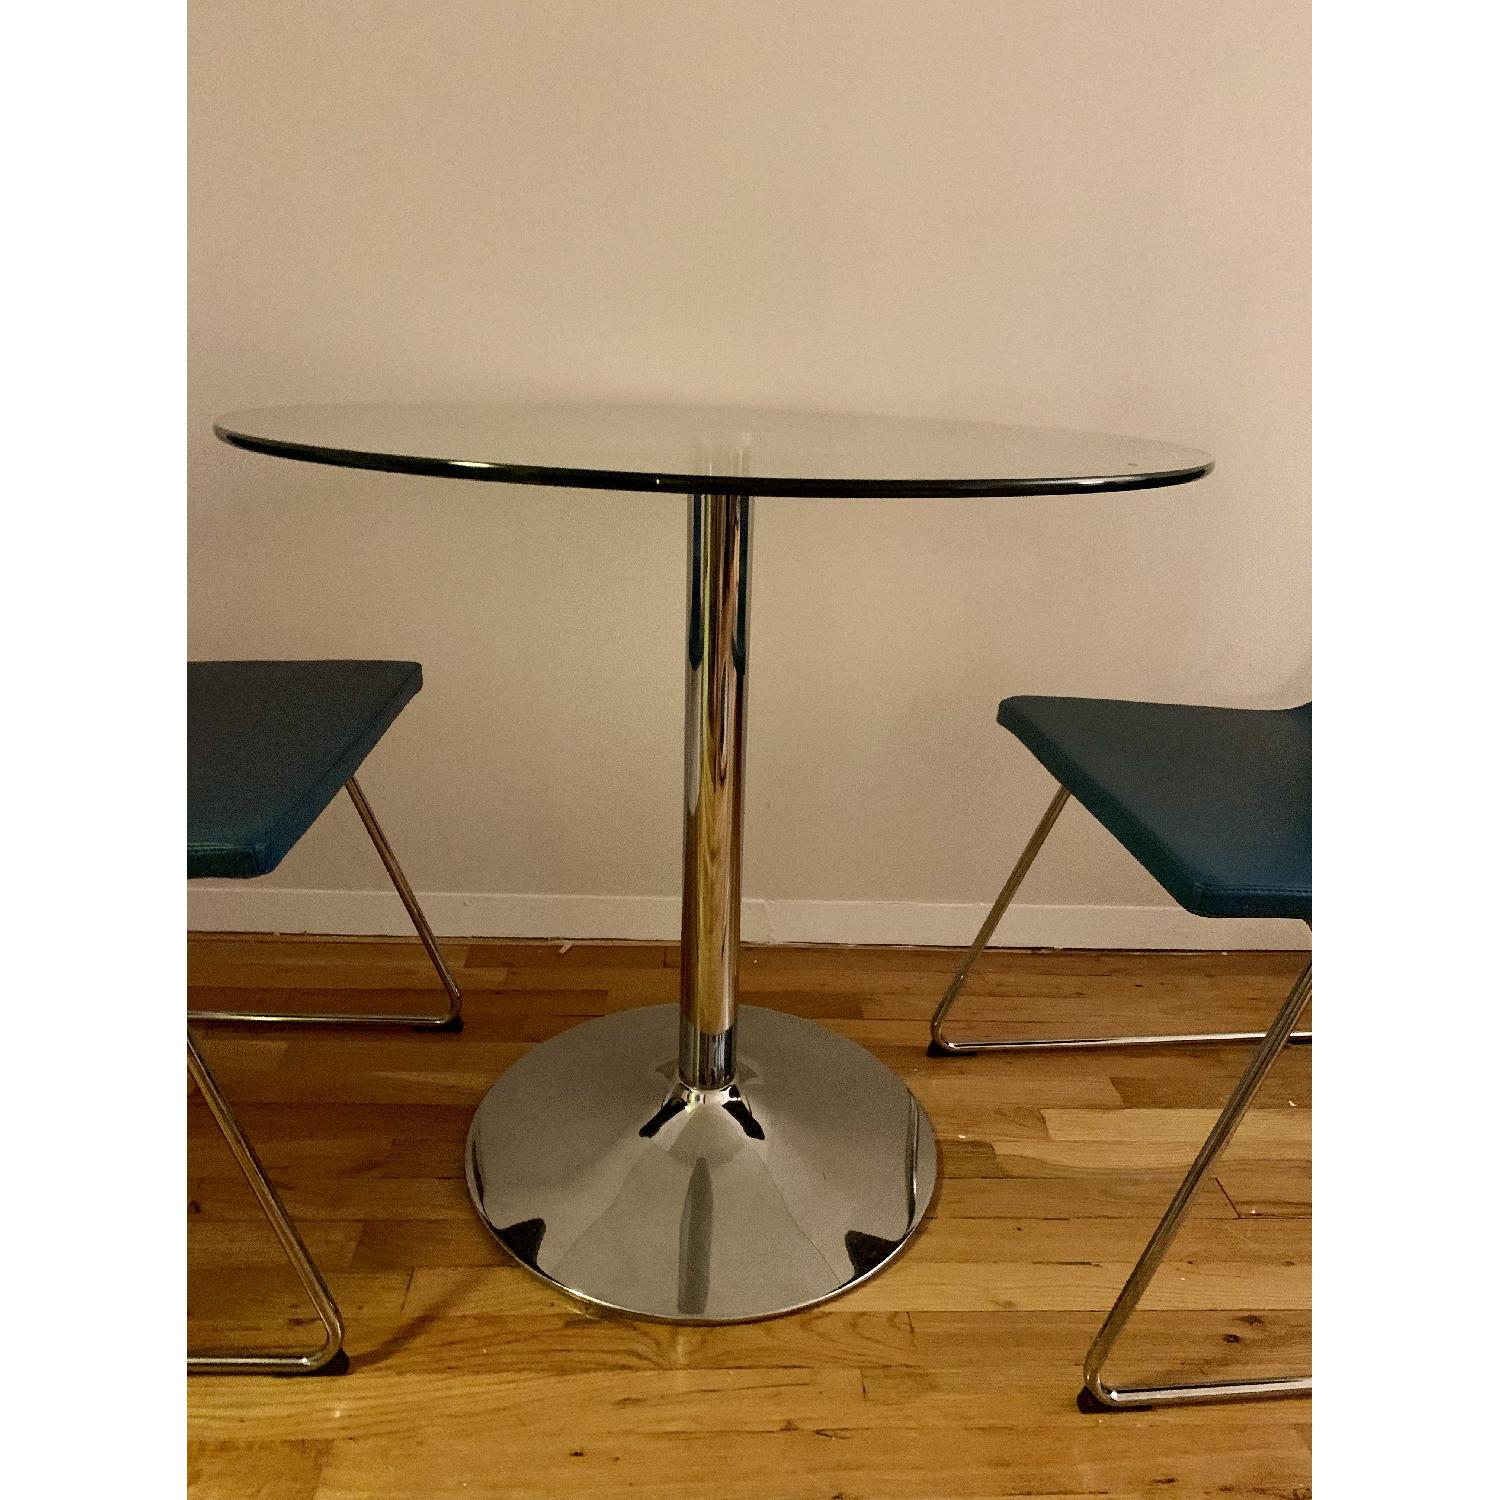 Round Glass Dining Table w/ 2 Ikea Chairs - image-1